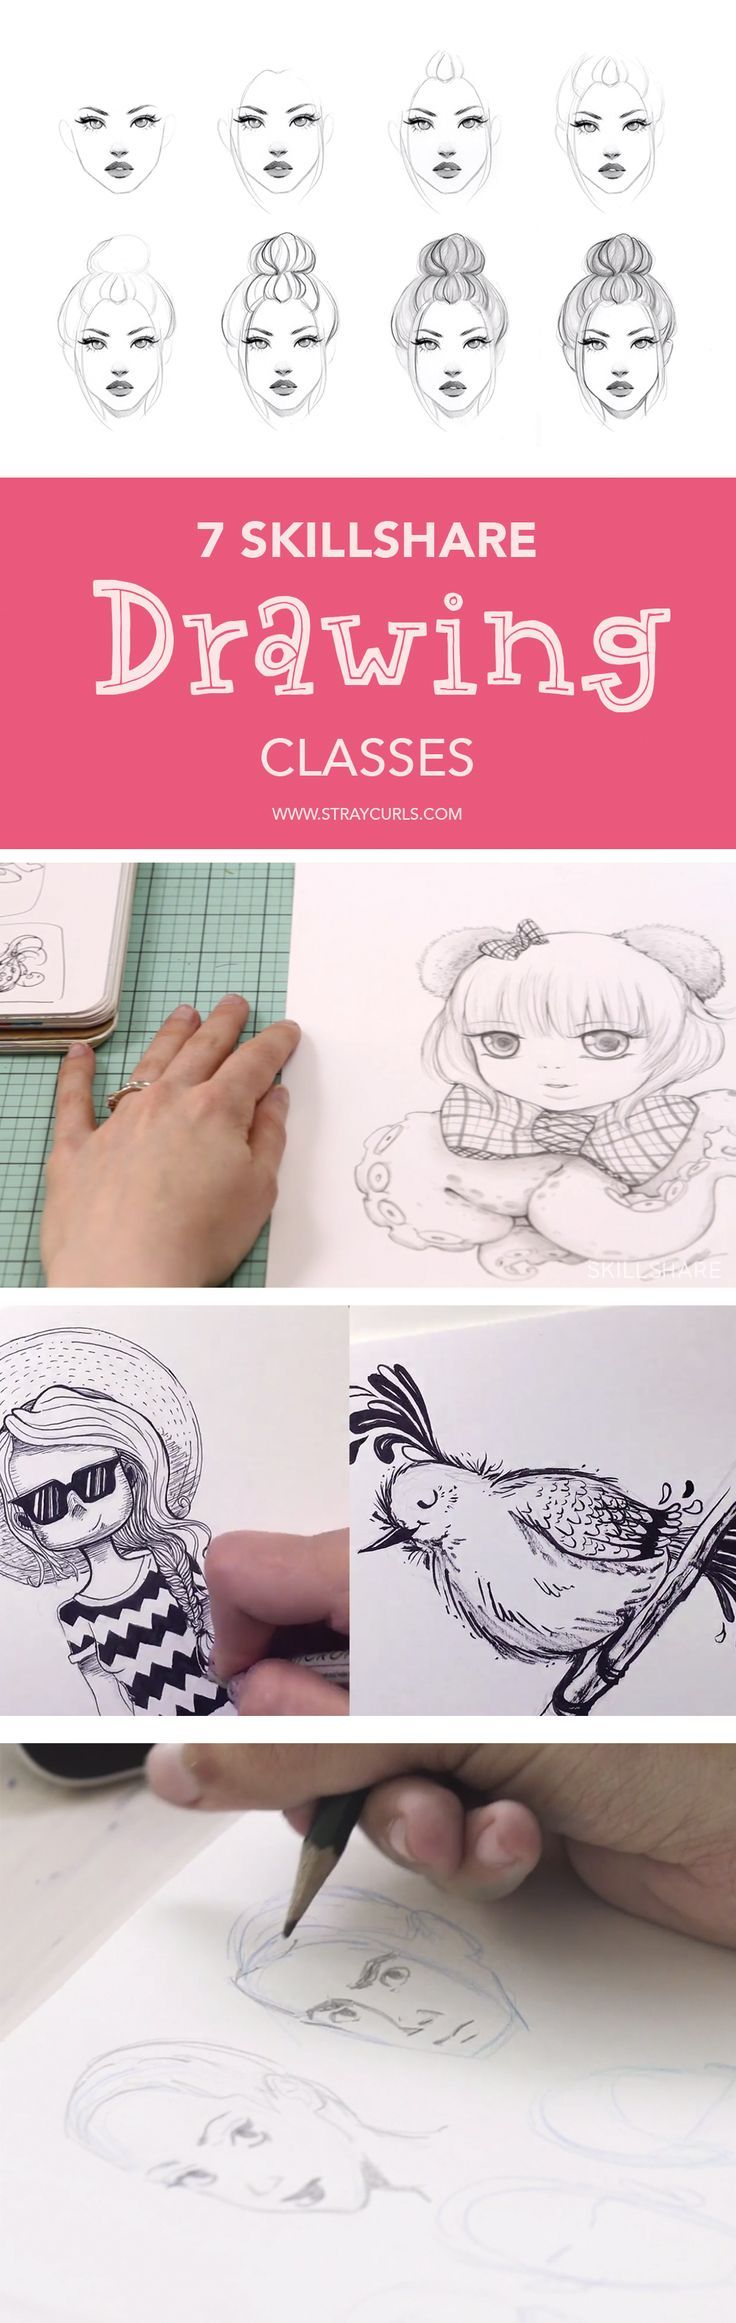 7 Drawing Classes On Skillshare You Must Take Free Trial